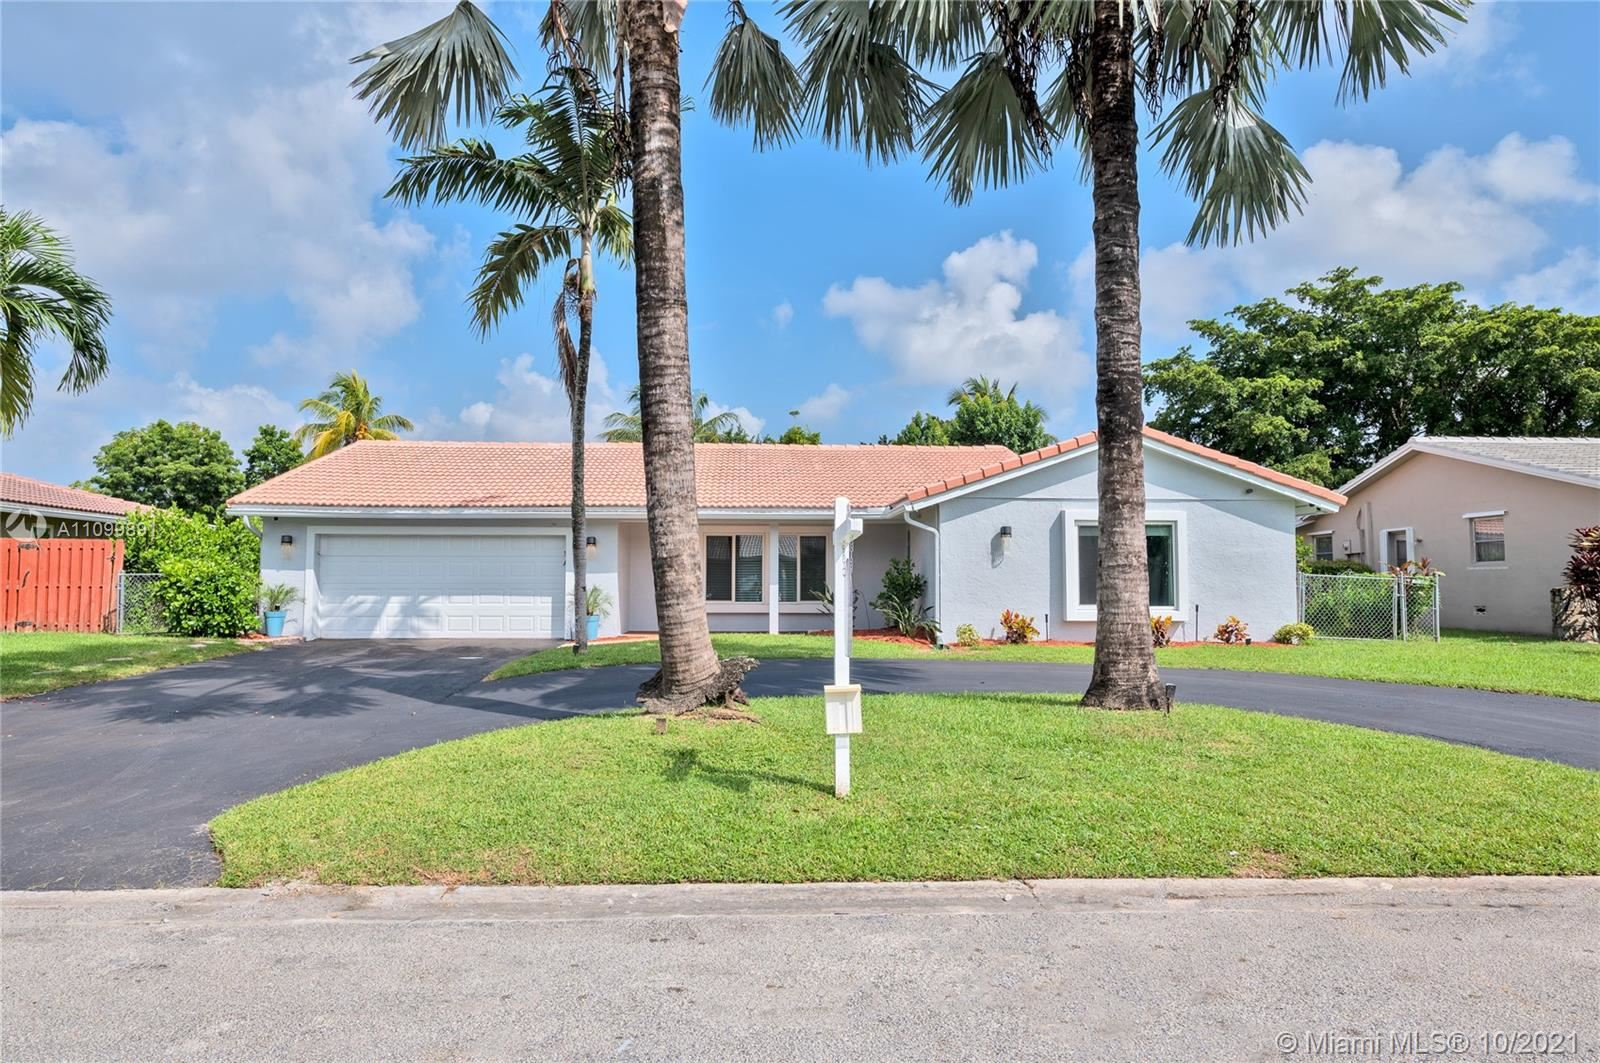 8793 NW 27th St, Coral Springs, FL 33065 - #: A11099891